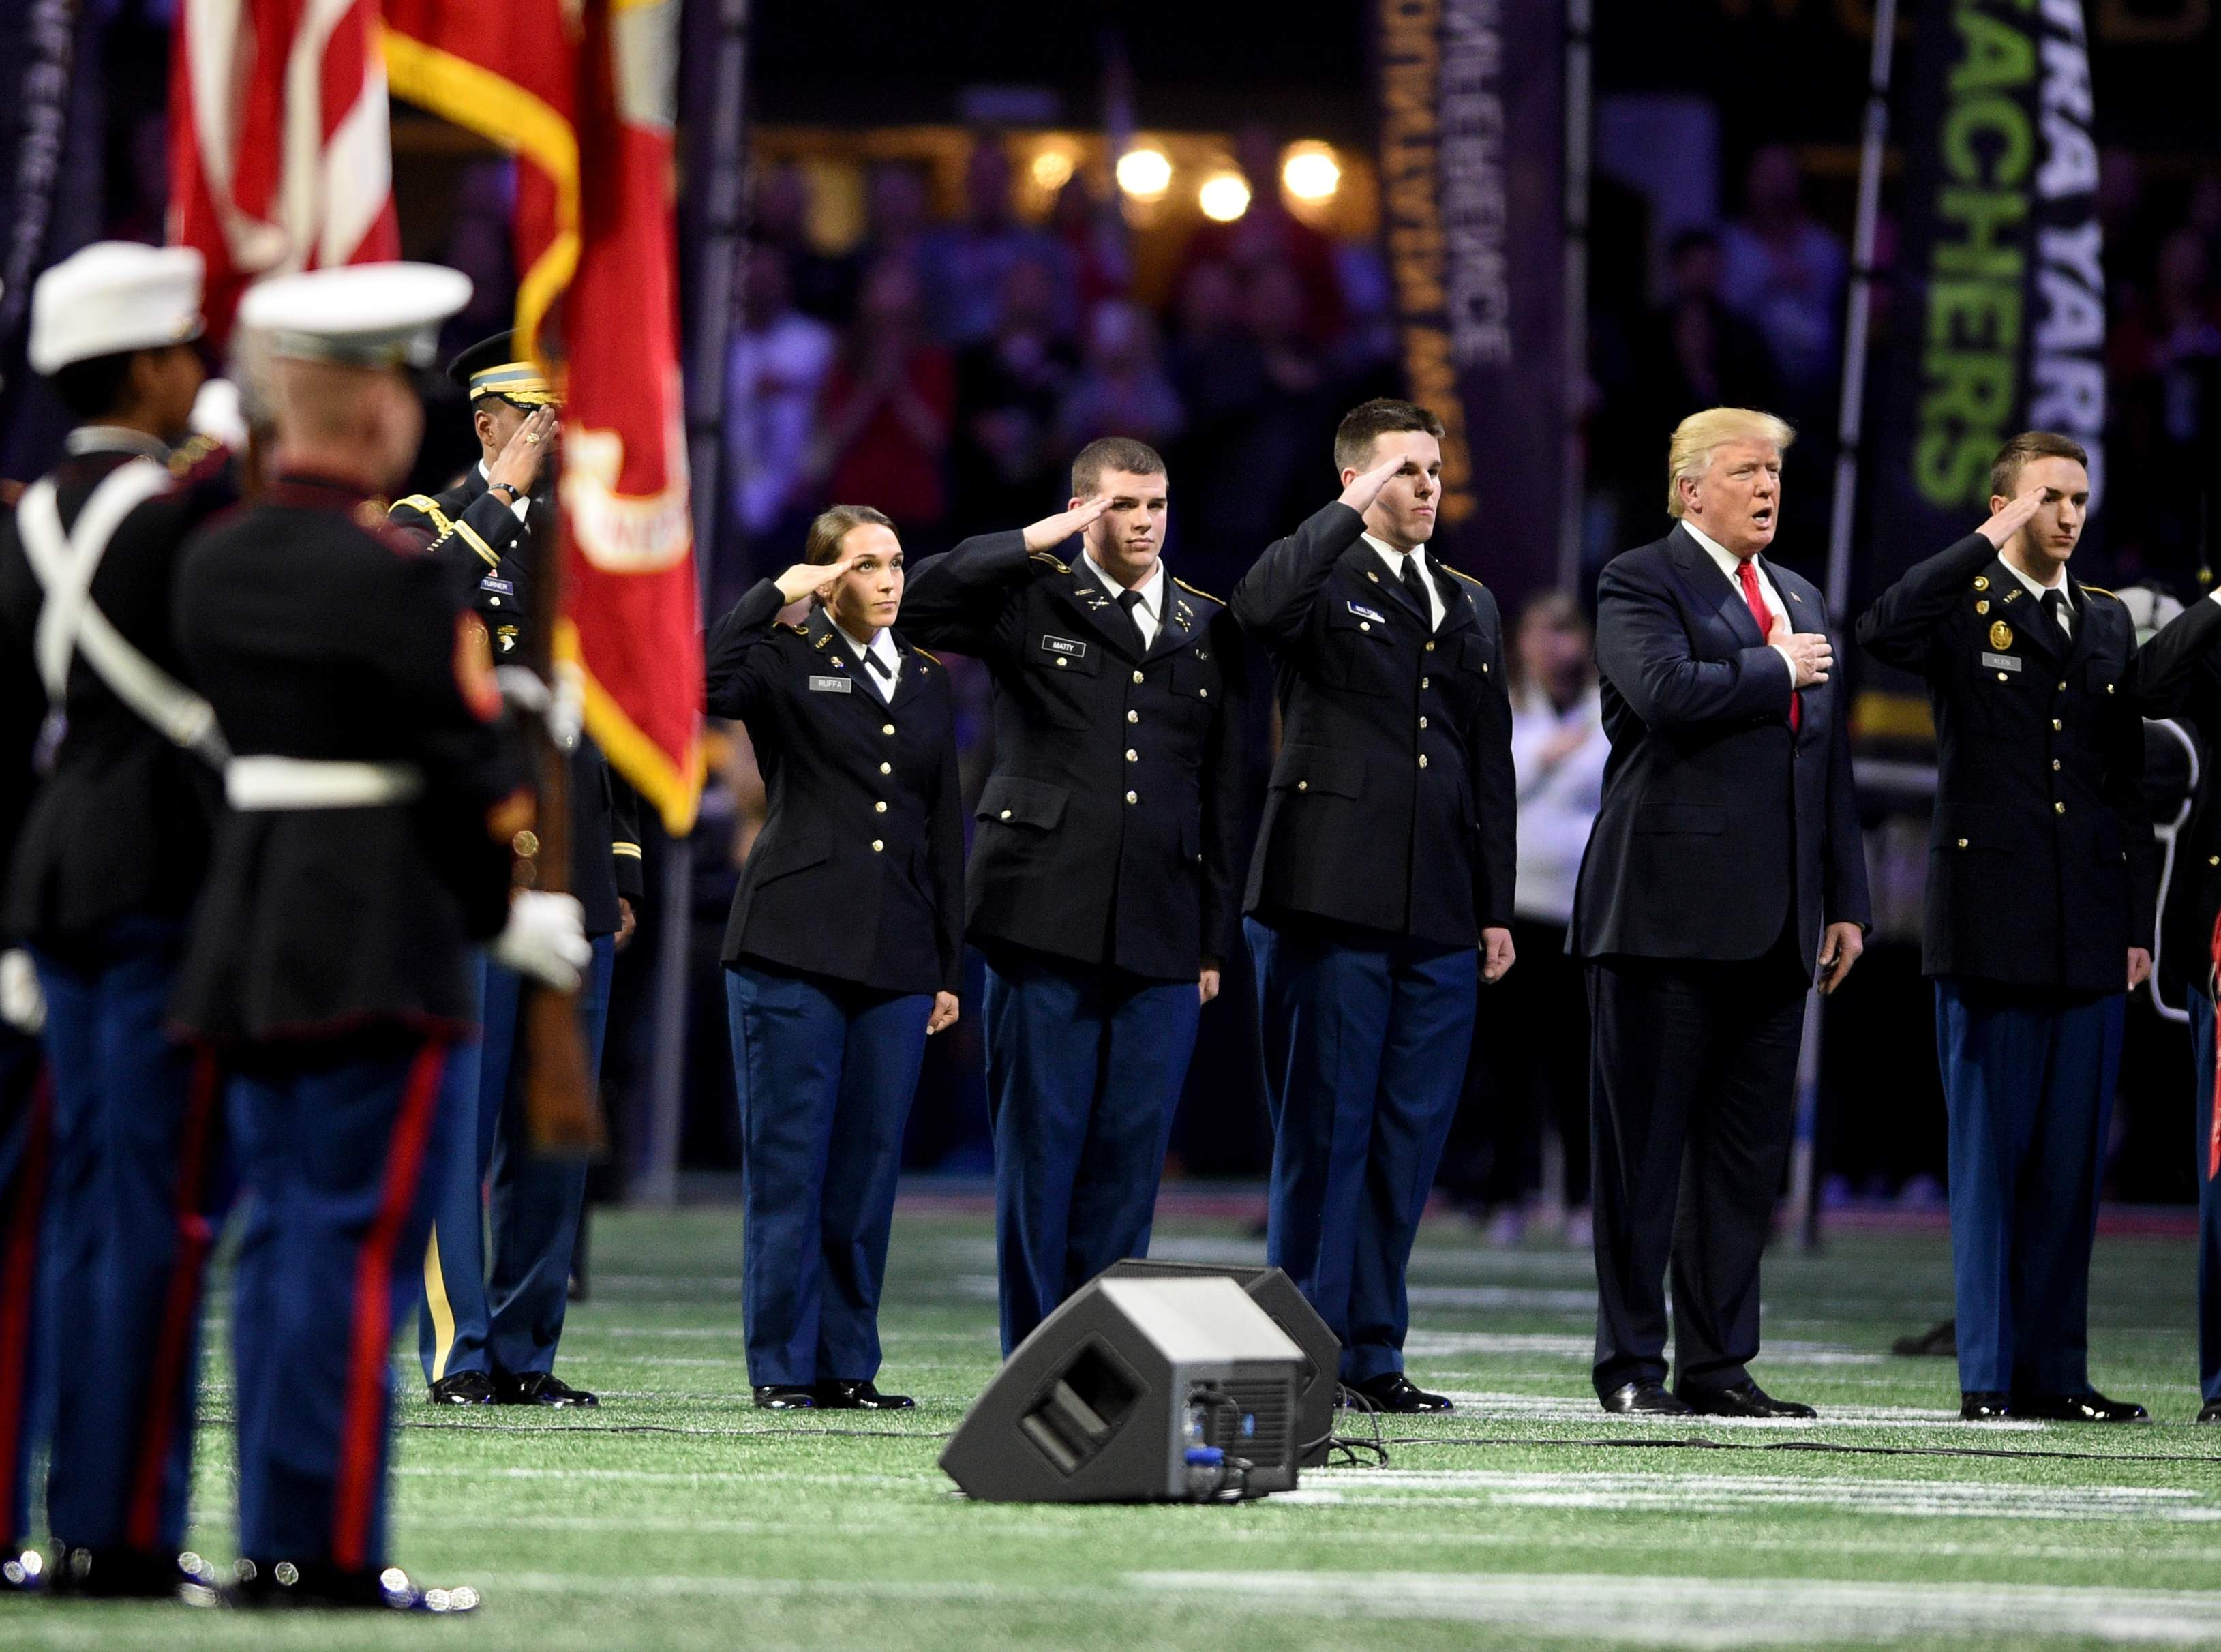 President Trump took the field for the Natioal Anthem during the 2018 College Football Playoff National Championship at Mercedes-Benz Stadium in Atlanta, Ga., Monday evening January 8, 2018. MICHAEL HOLAHAN/AUGUSTA CHRONICLE